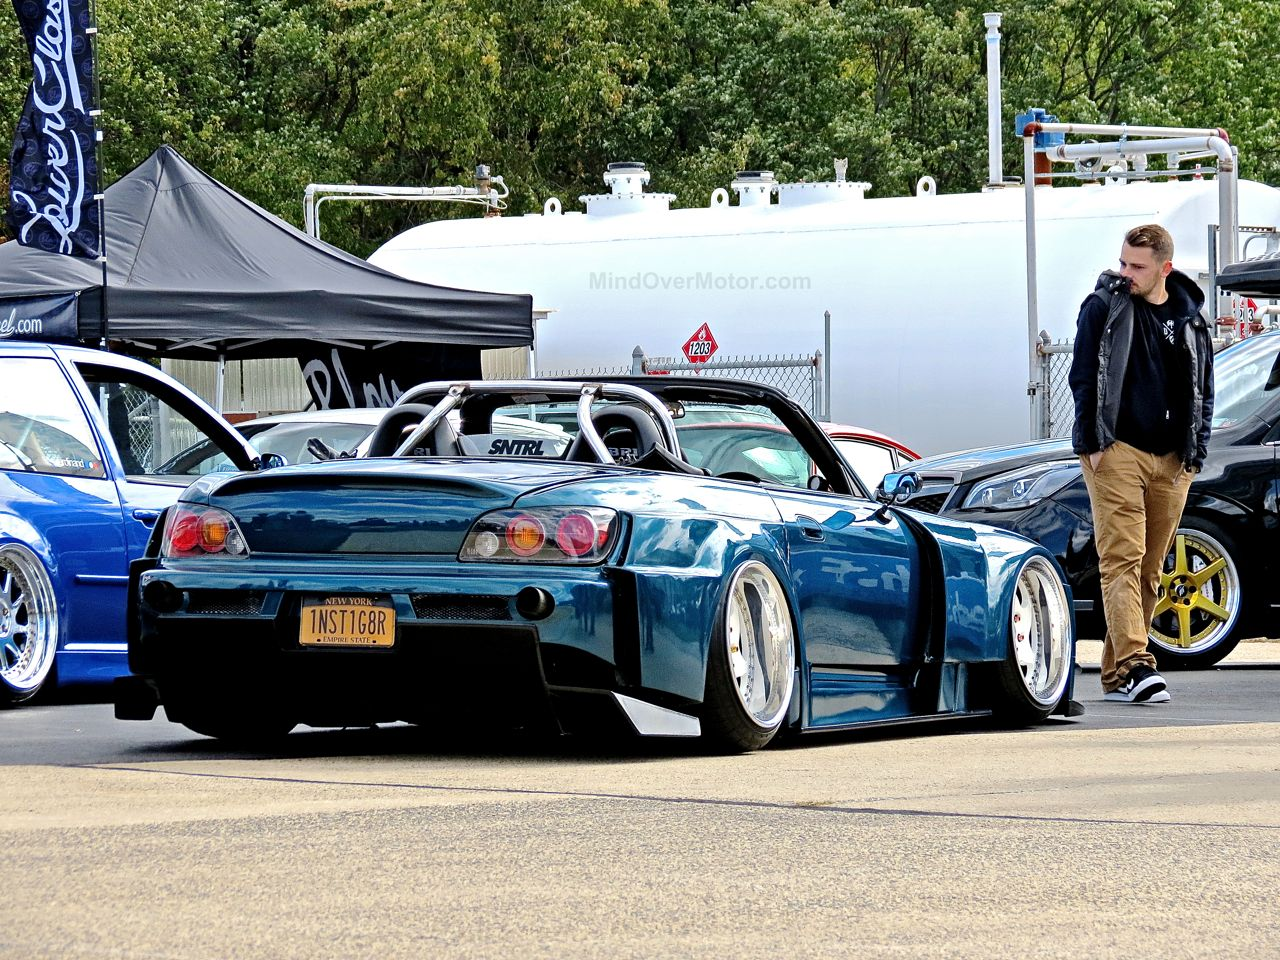 Widebody Honda S2000 First Class Fitment